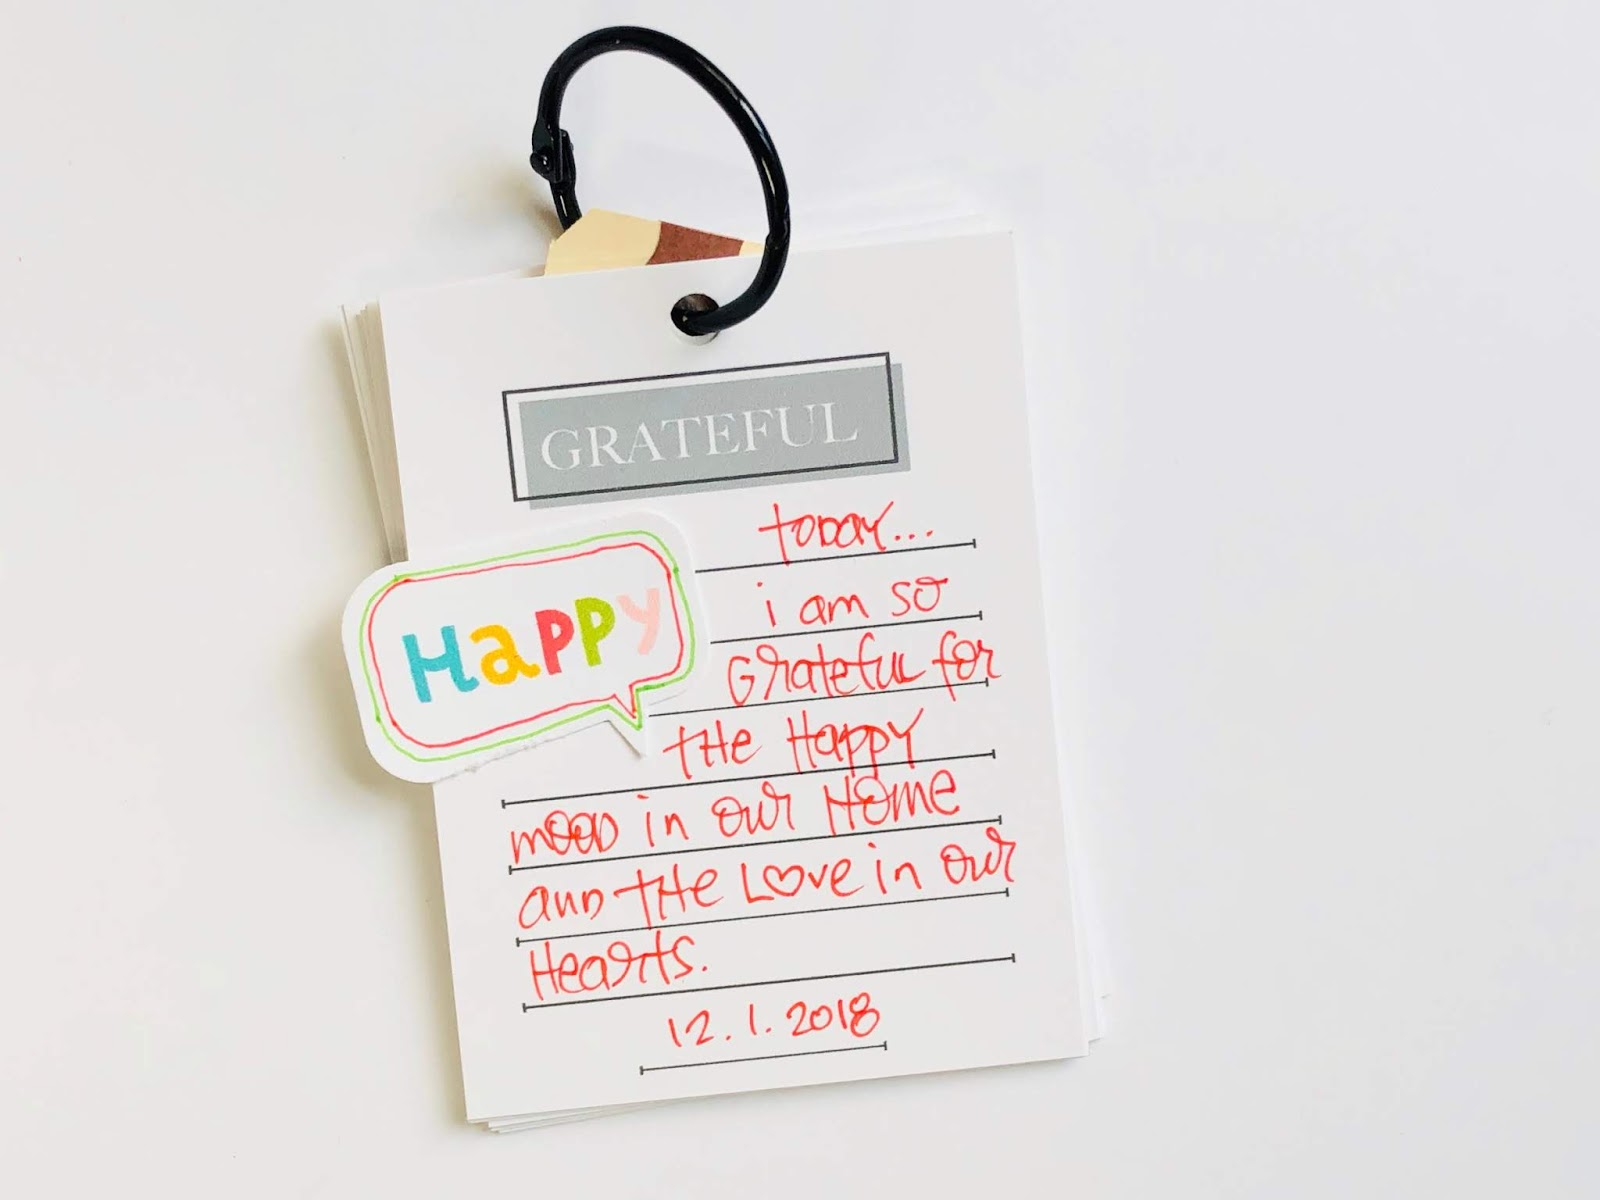 #Gratitude Journal #Gratitude #Grateful #Journal #Journal Cards #Pocket Scrapbooking #Journaling Cards #365 Things #Today